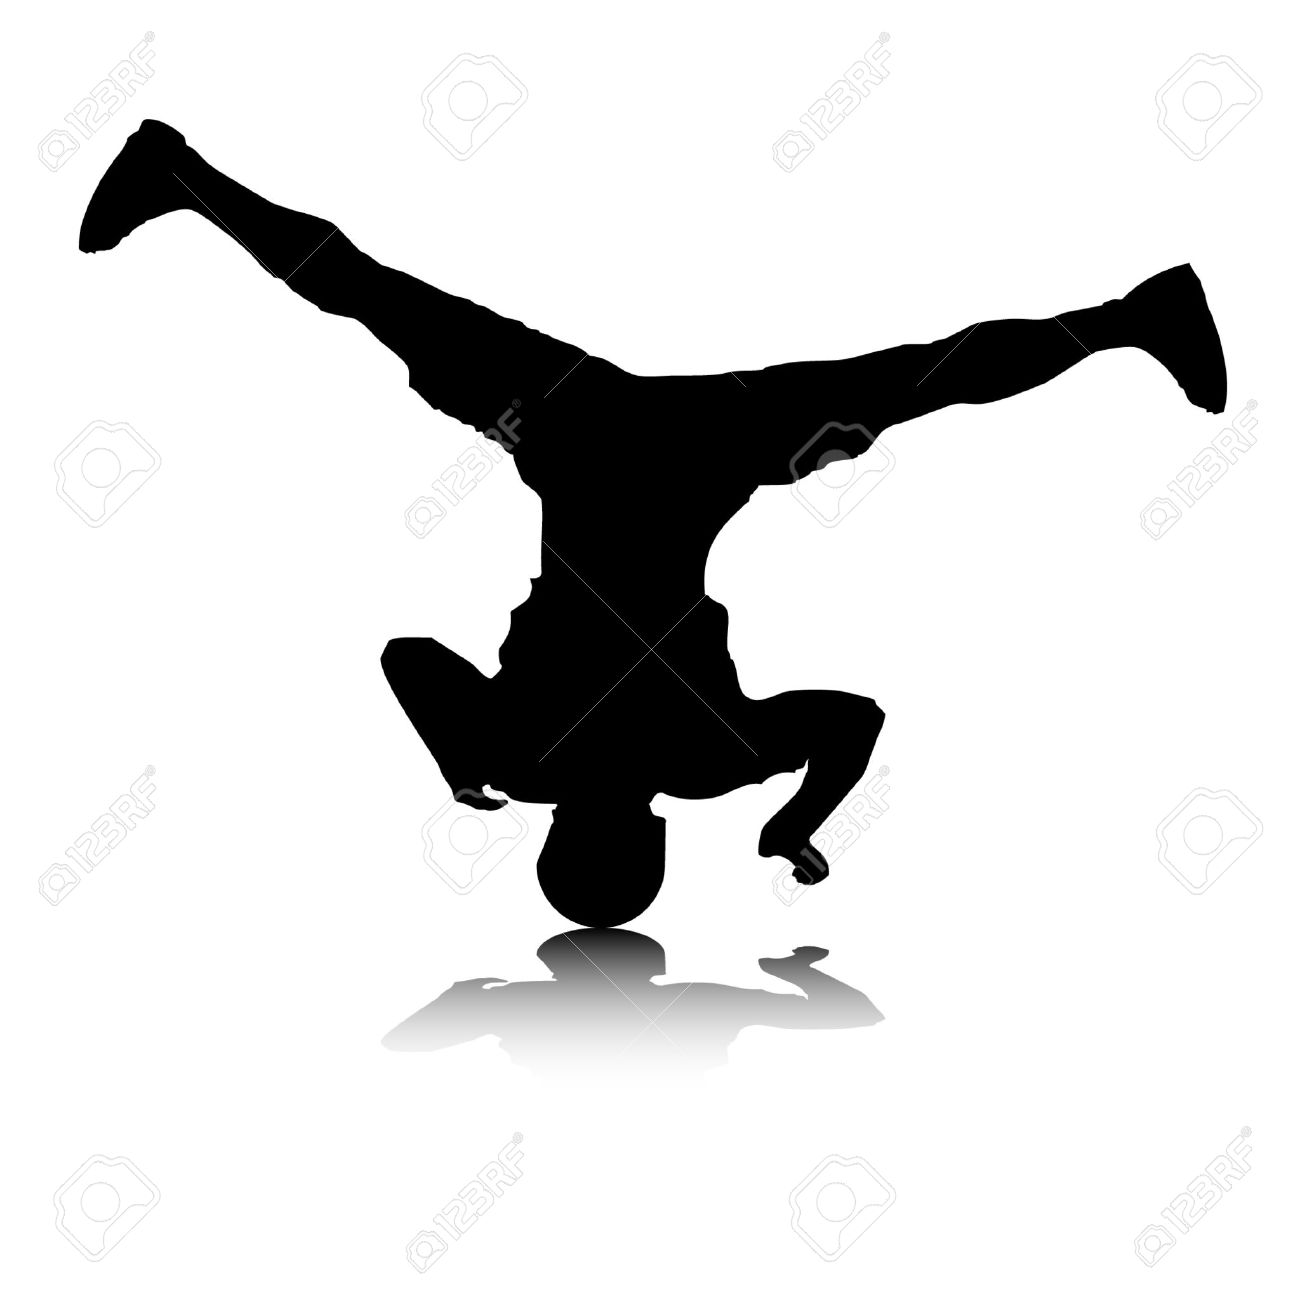 Breakdance clipart 2 » Clipart Station.